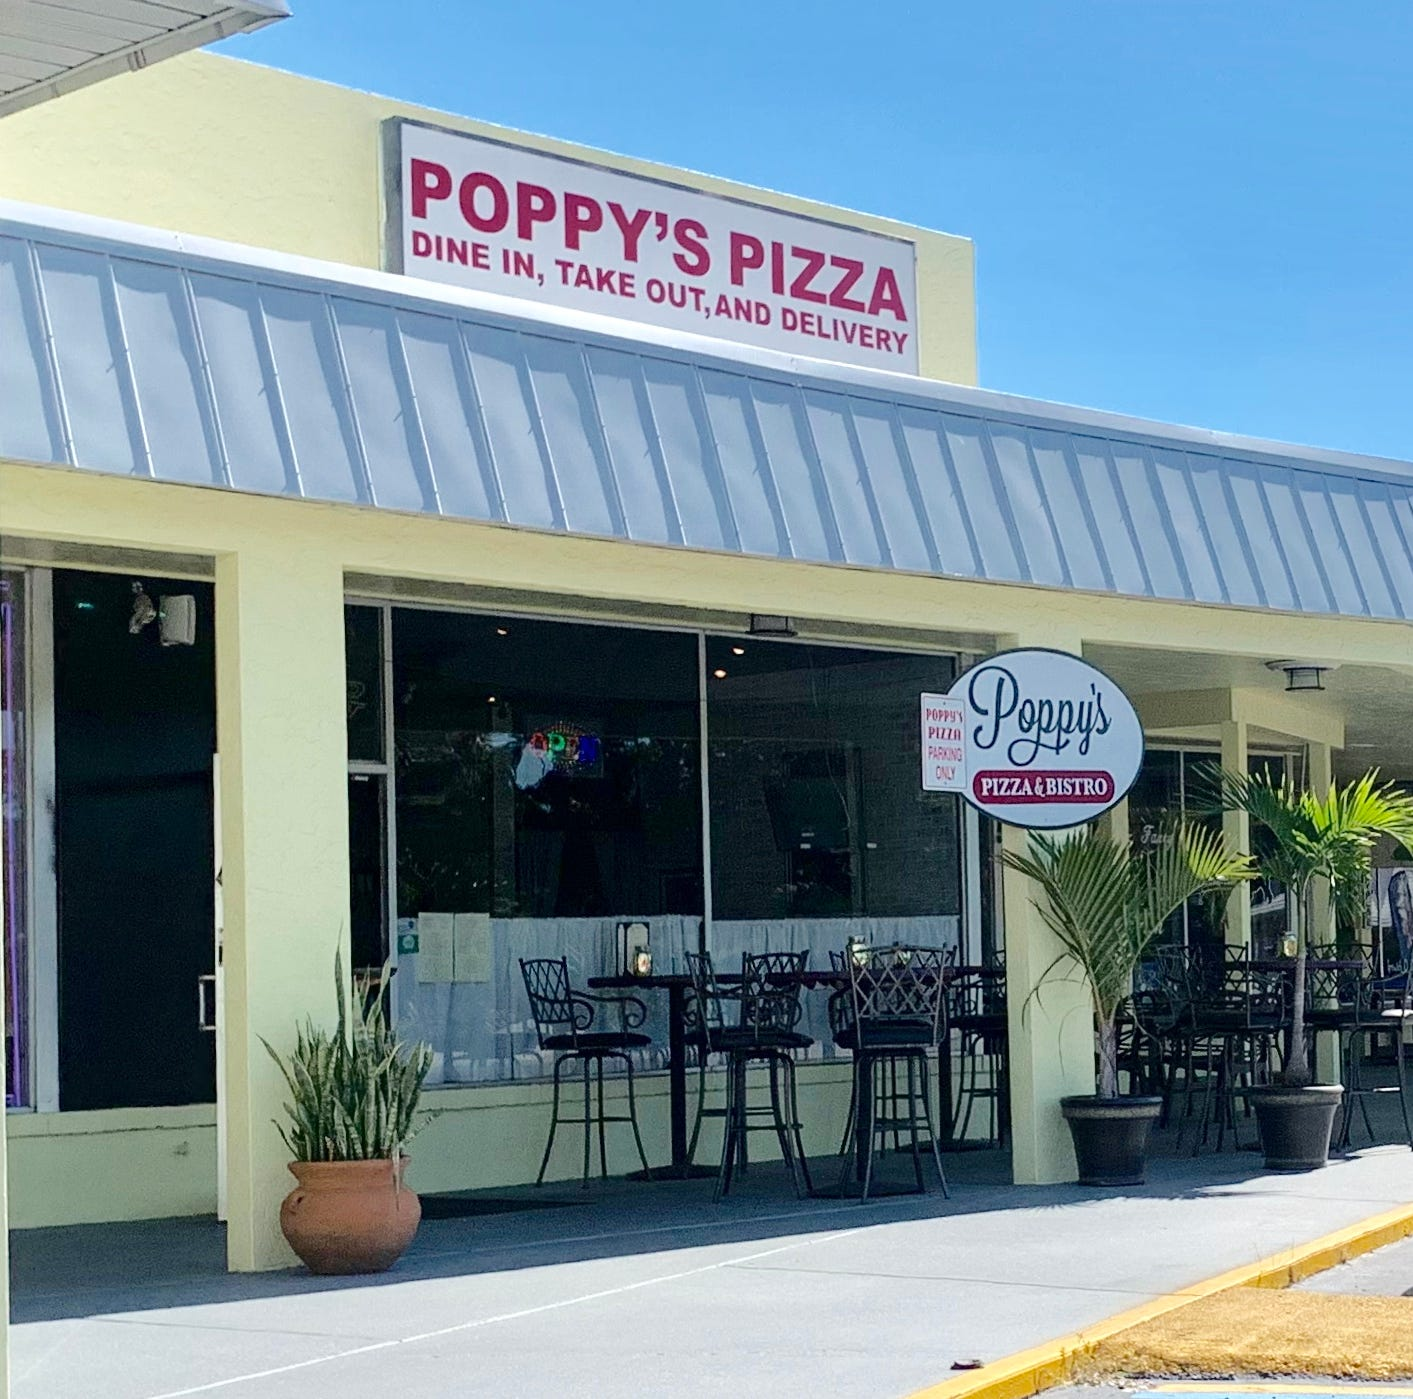 Fort Myers restaurant Poppy's Pizza & Bistro reopens days after co-owner's arrest, death